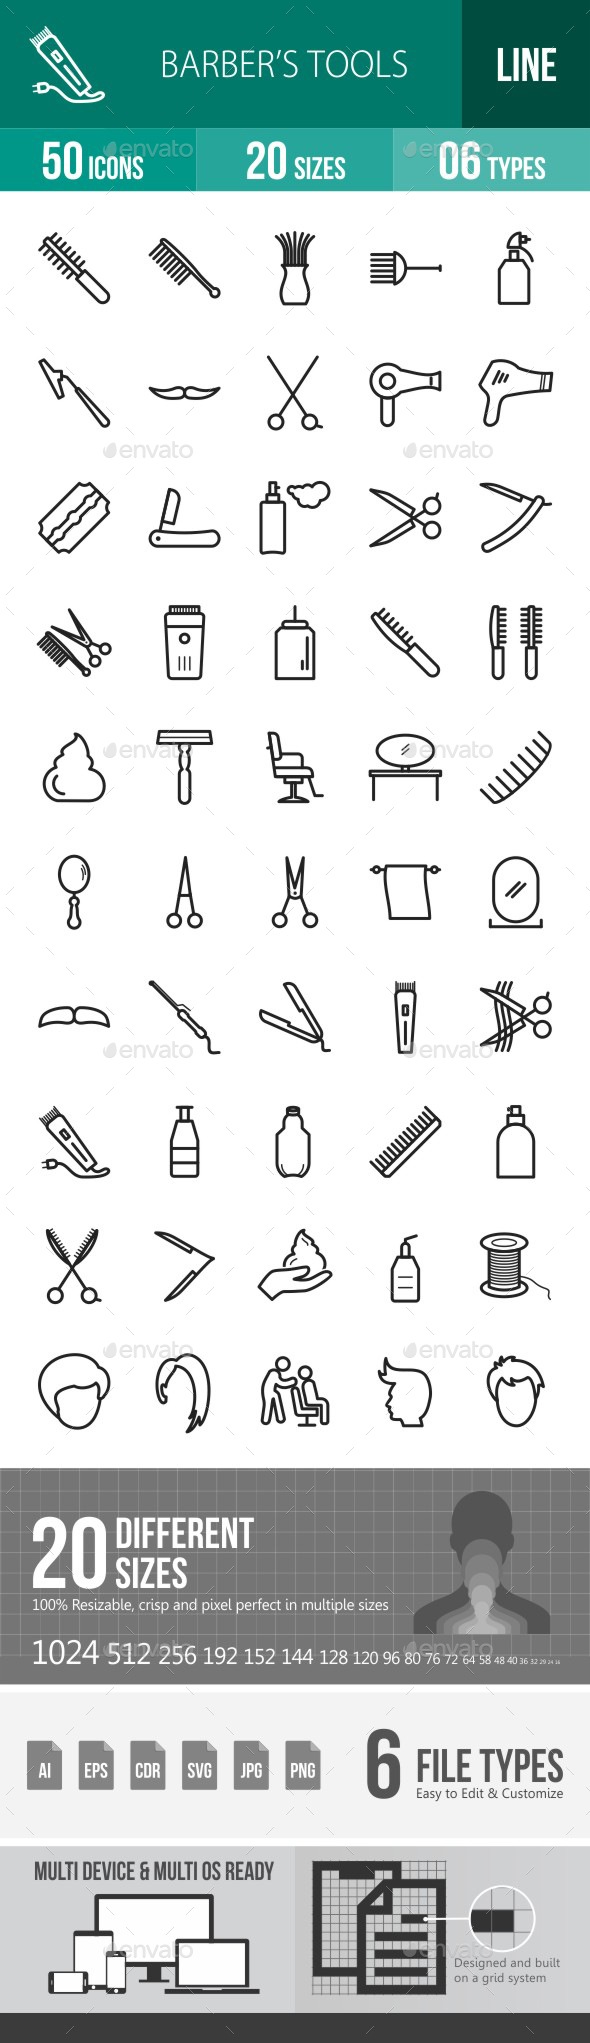 Barber's Tools Line Icons - Icons